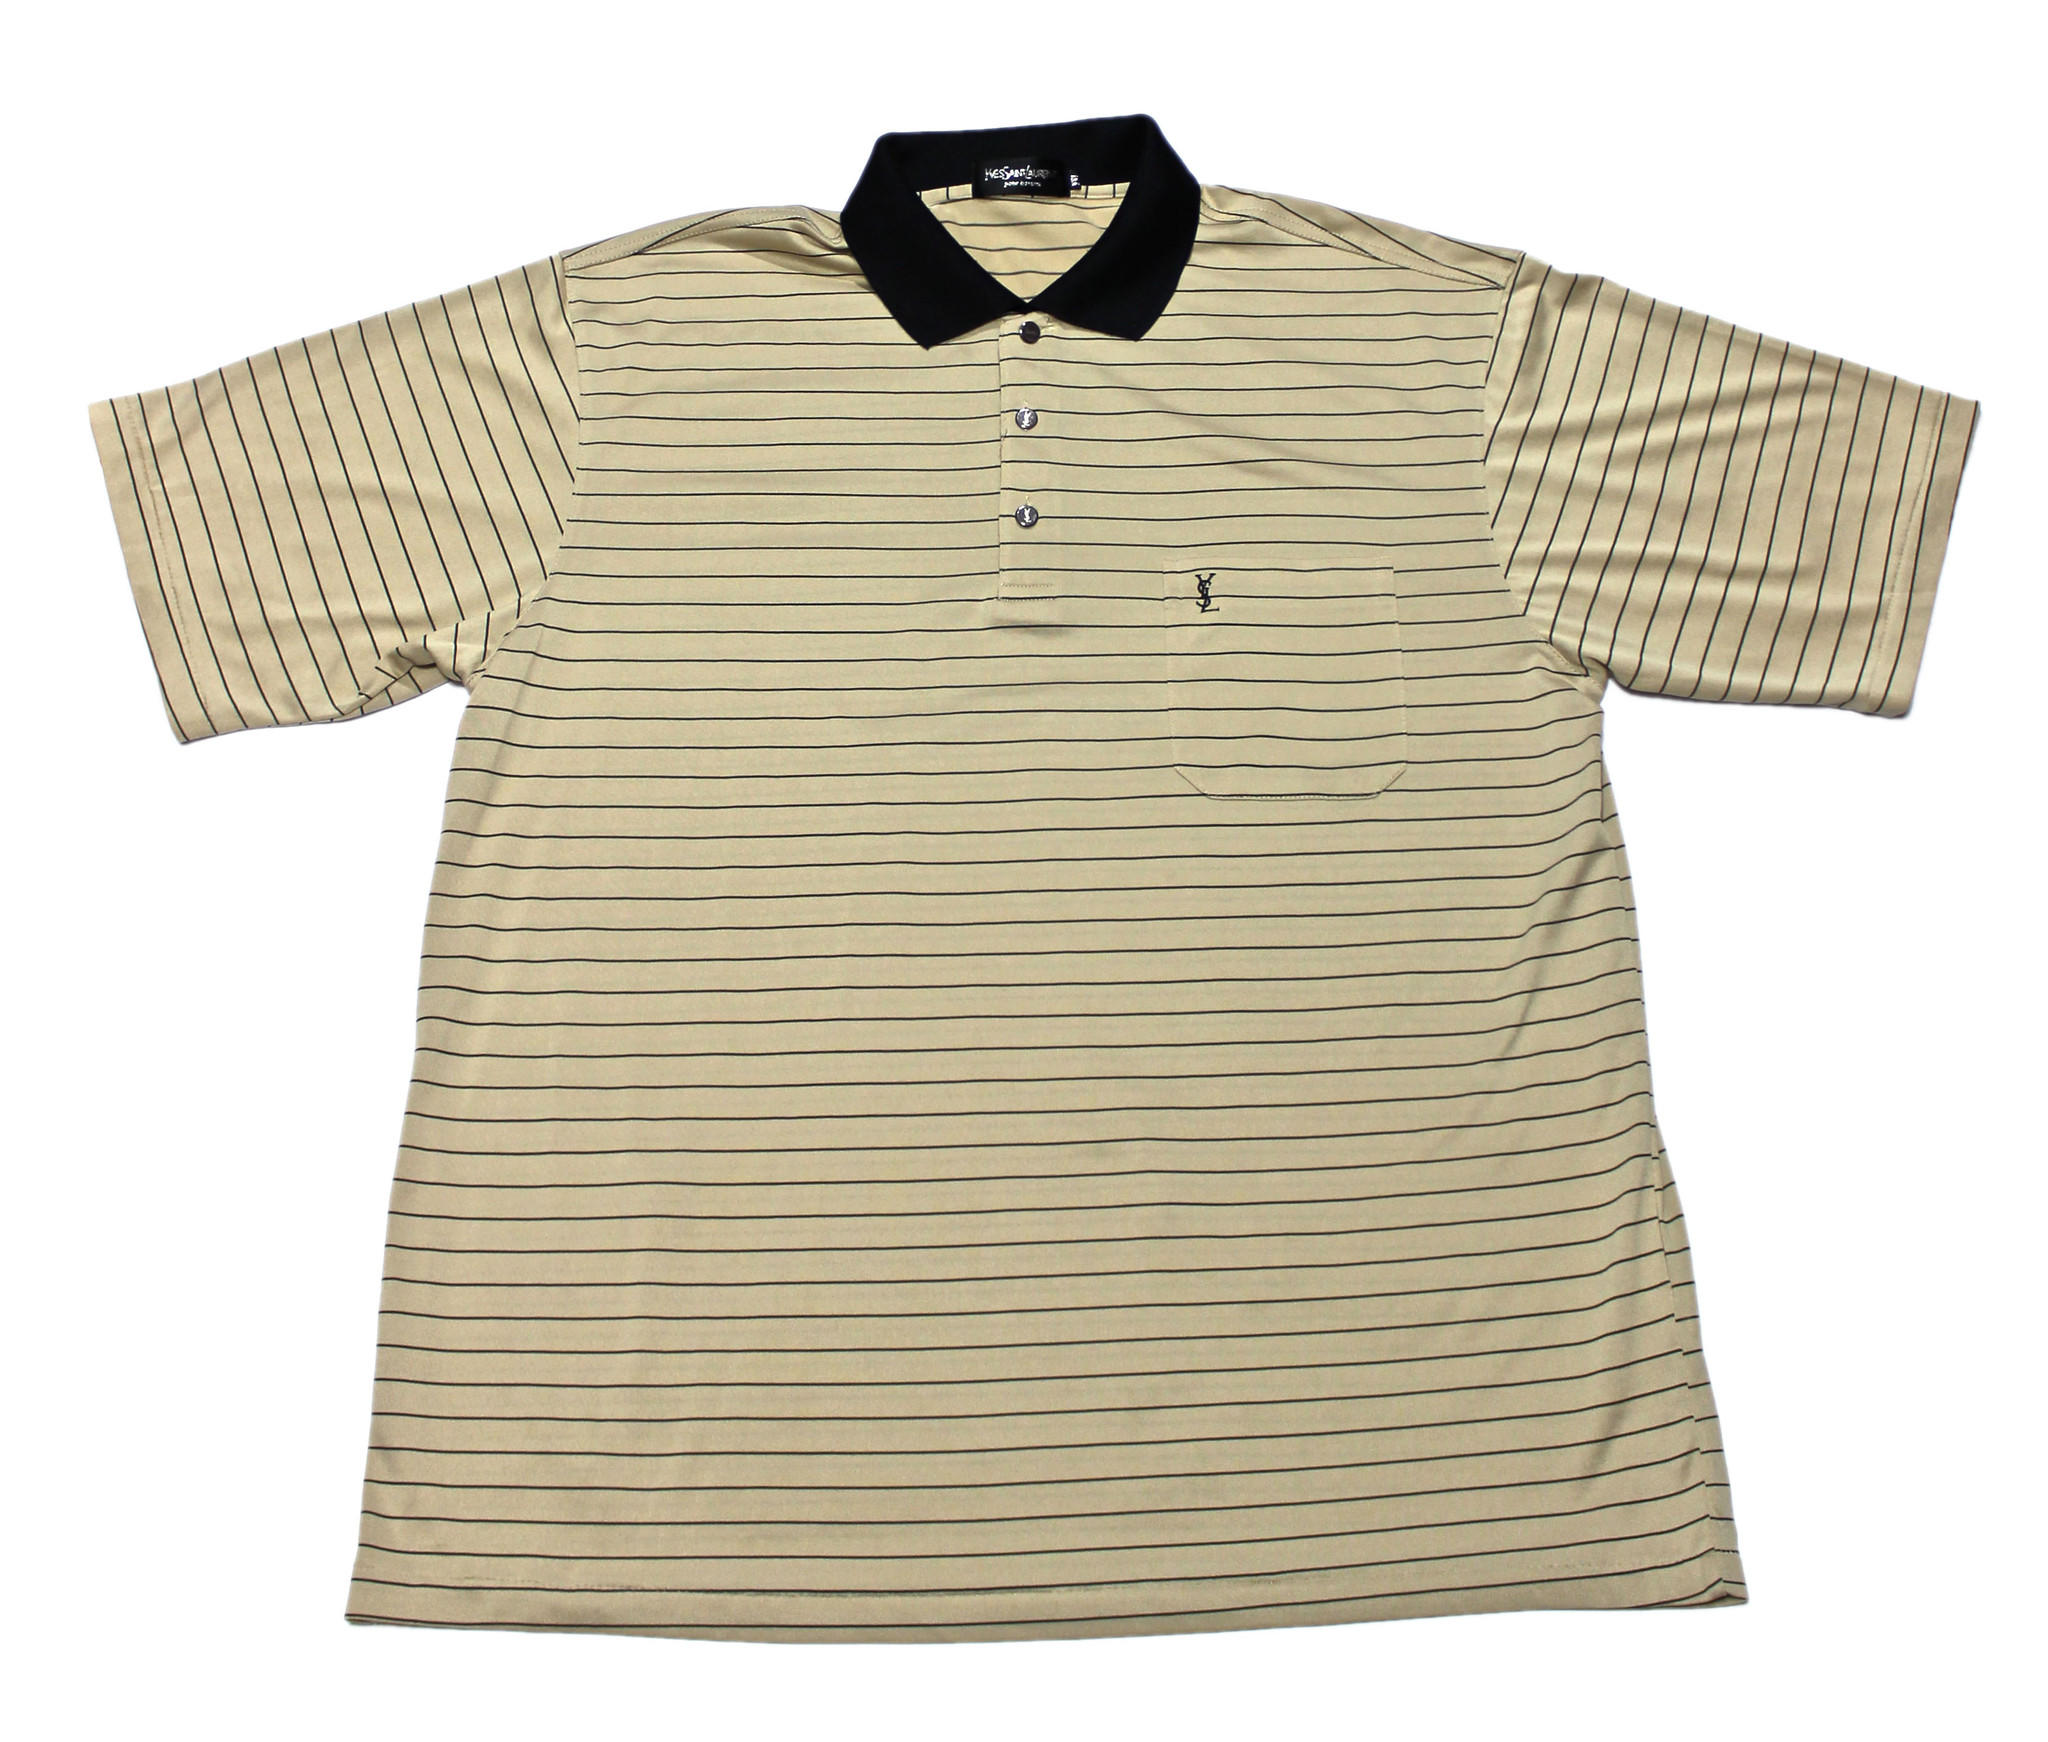 17b04498 Vintage Yves Saint Laurent YSL Silk Striped Polo Shirt Mens Size Large